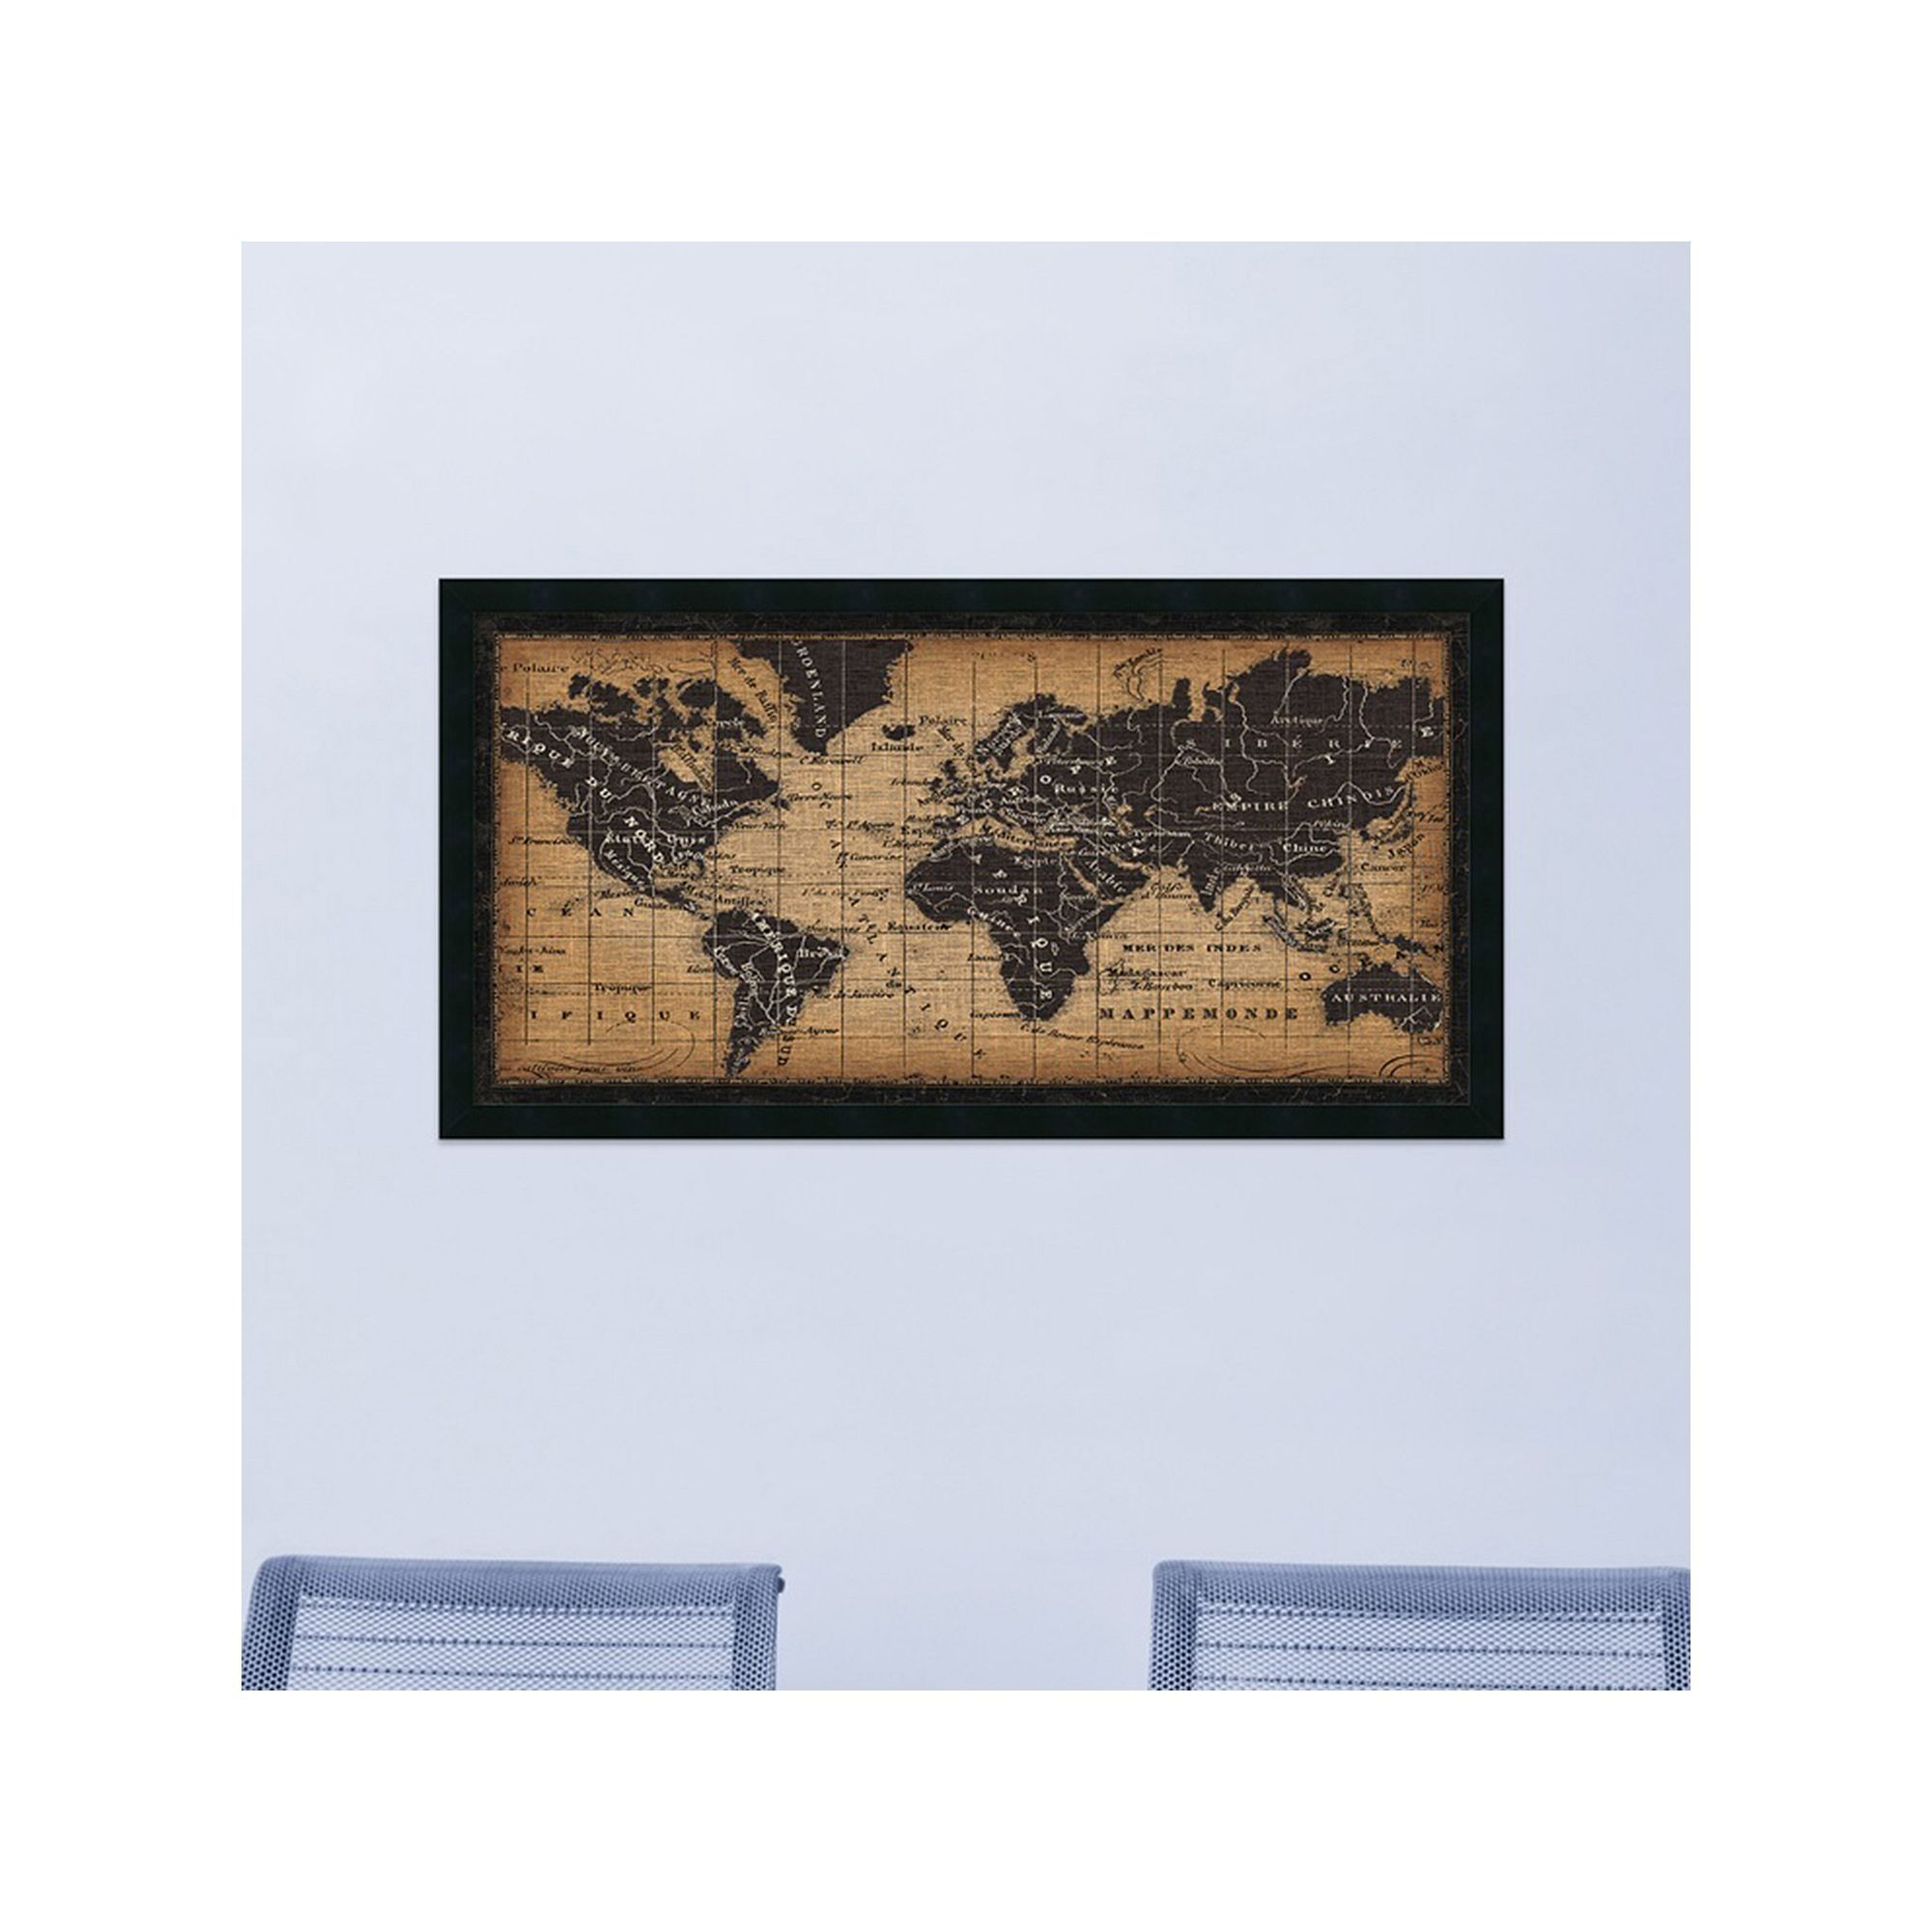 Amanti art traditional old world map framed wall art multicolor amanti art traditional old world map framed wall art multicolor gumiabroncs Gallery